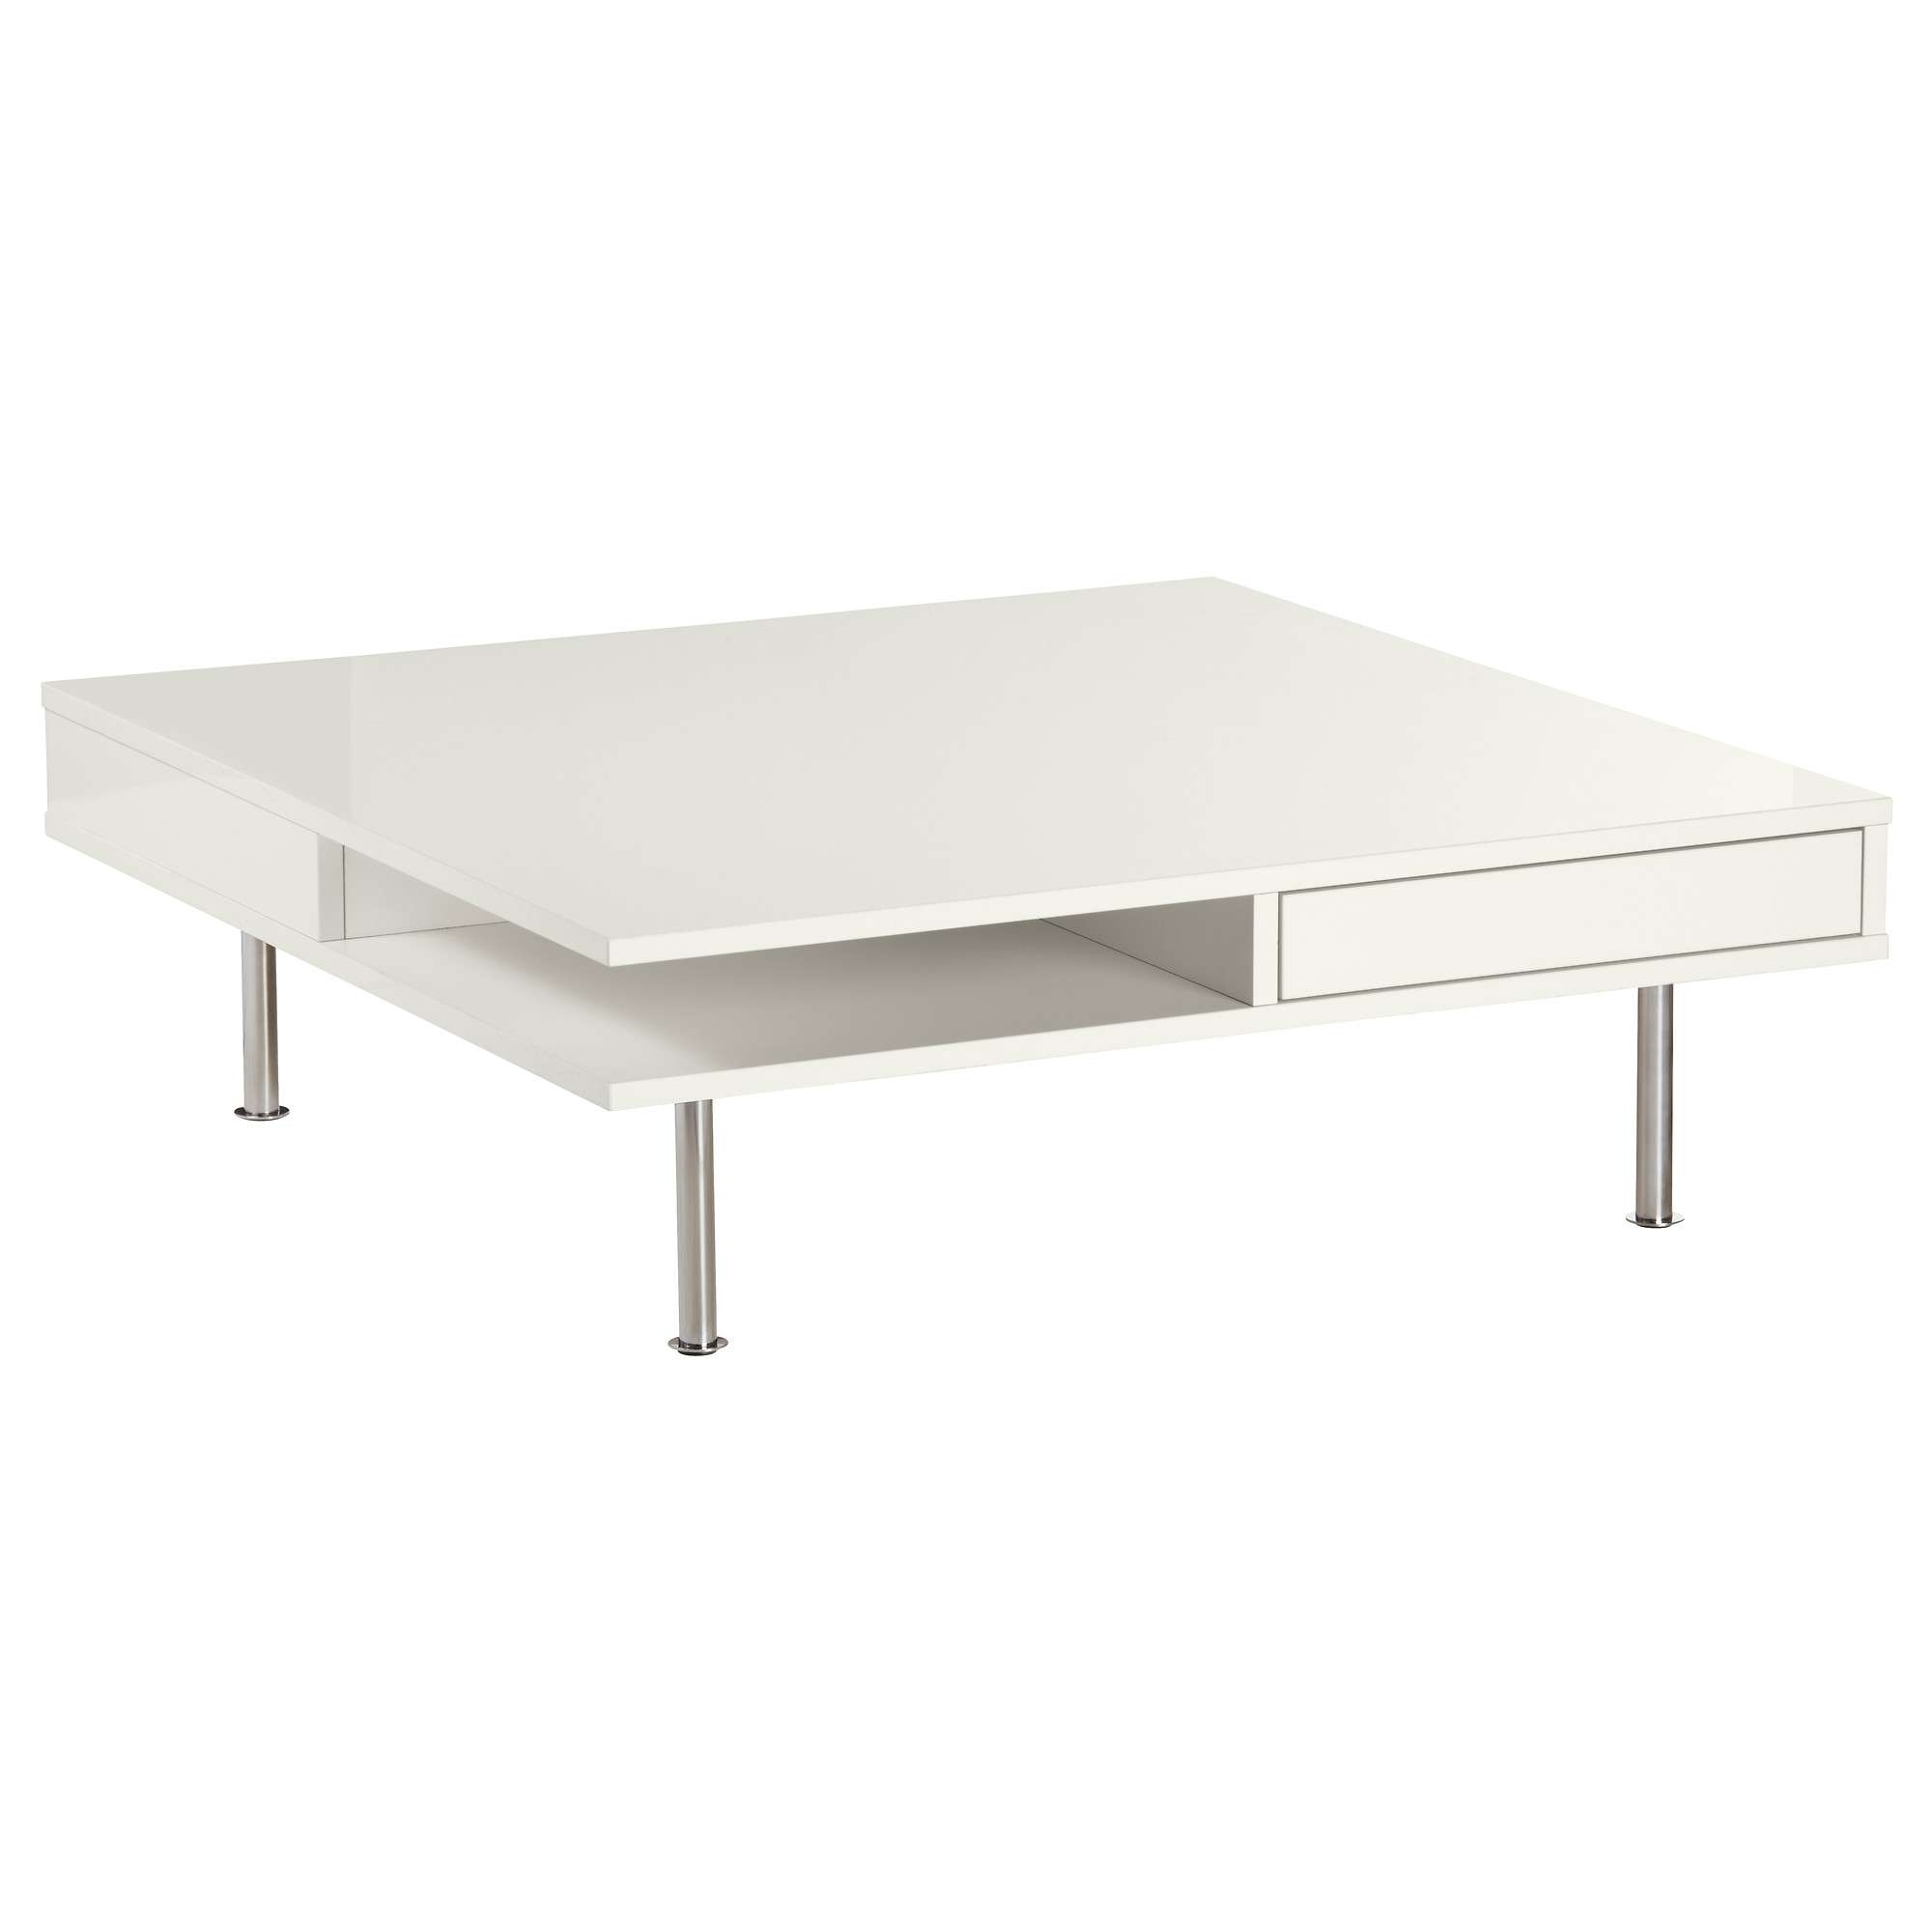 Most Popular Coffee Tables White High Gloss With Regard To Tofteryd Coffee Table – High Gloss White – Ikea (View 9 of 20)